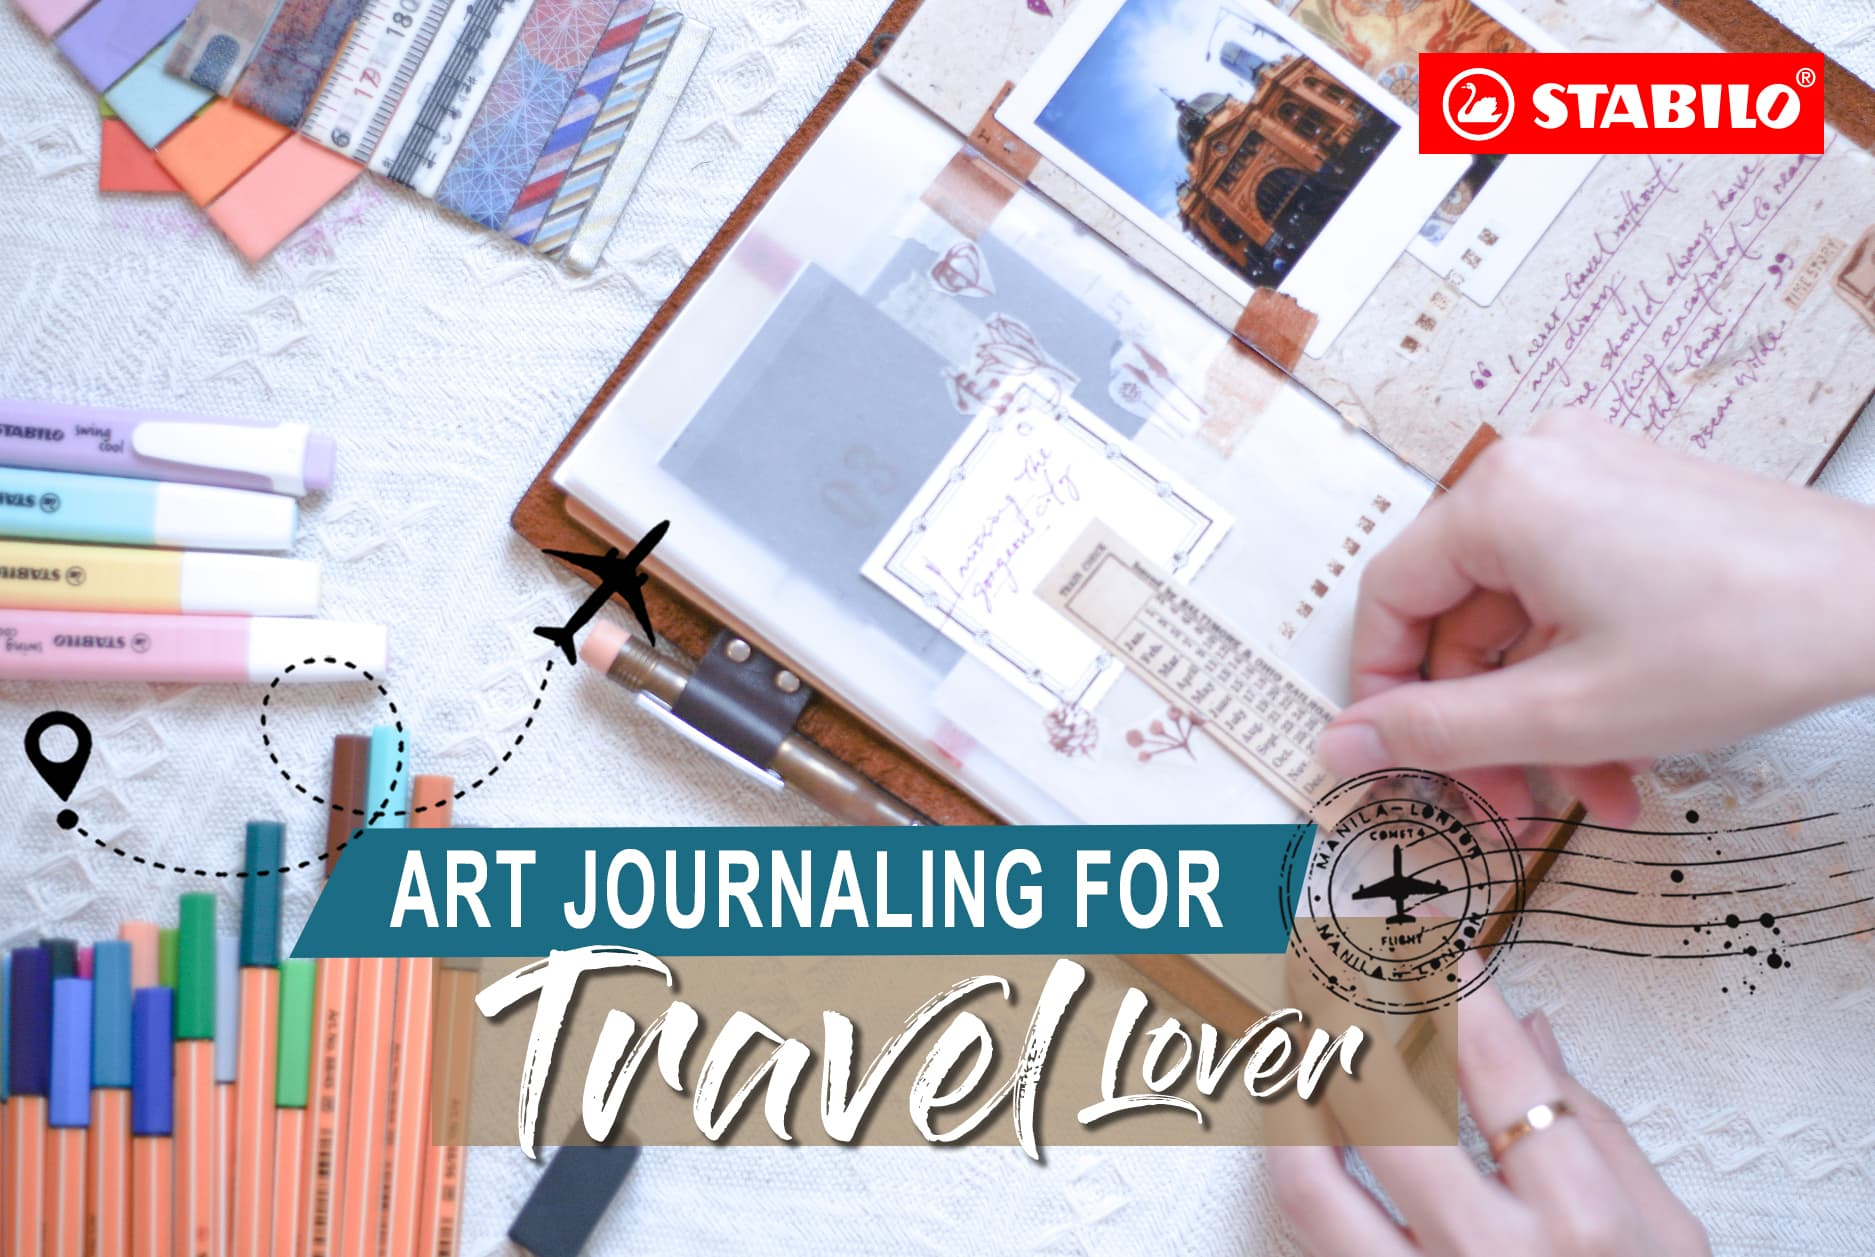 Art Journaling for Travel Lover